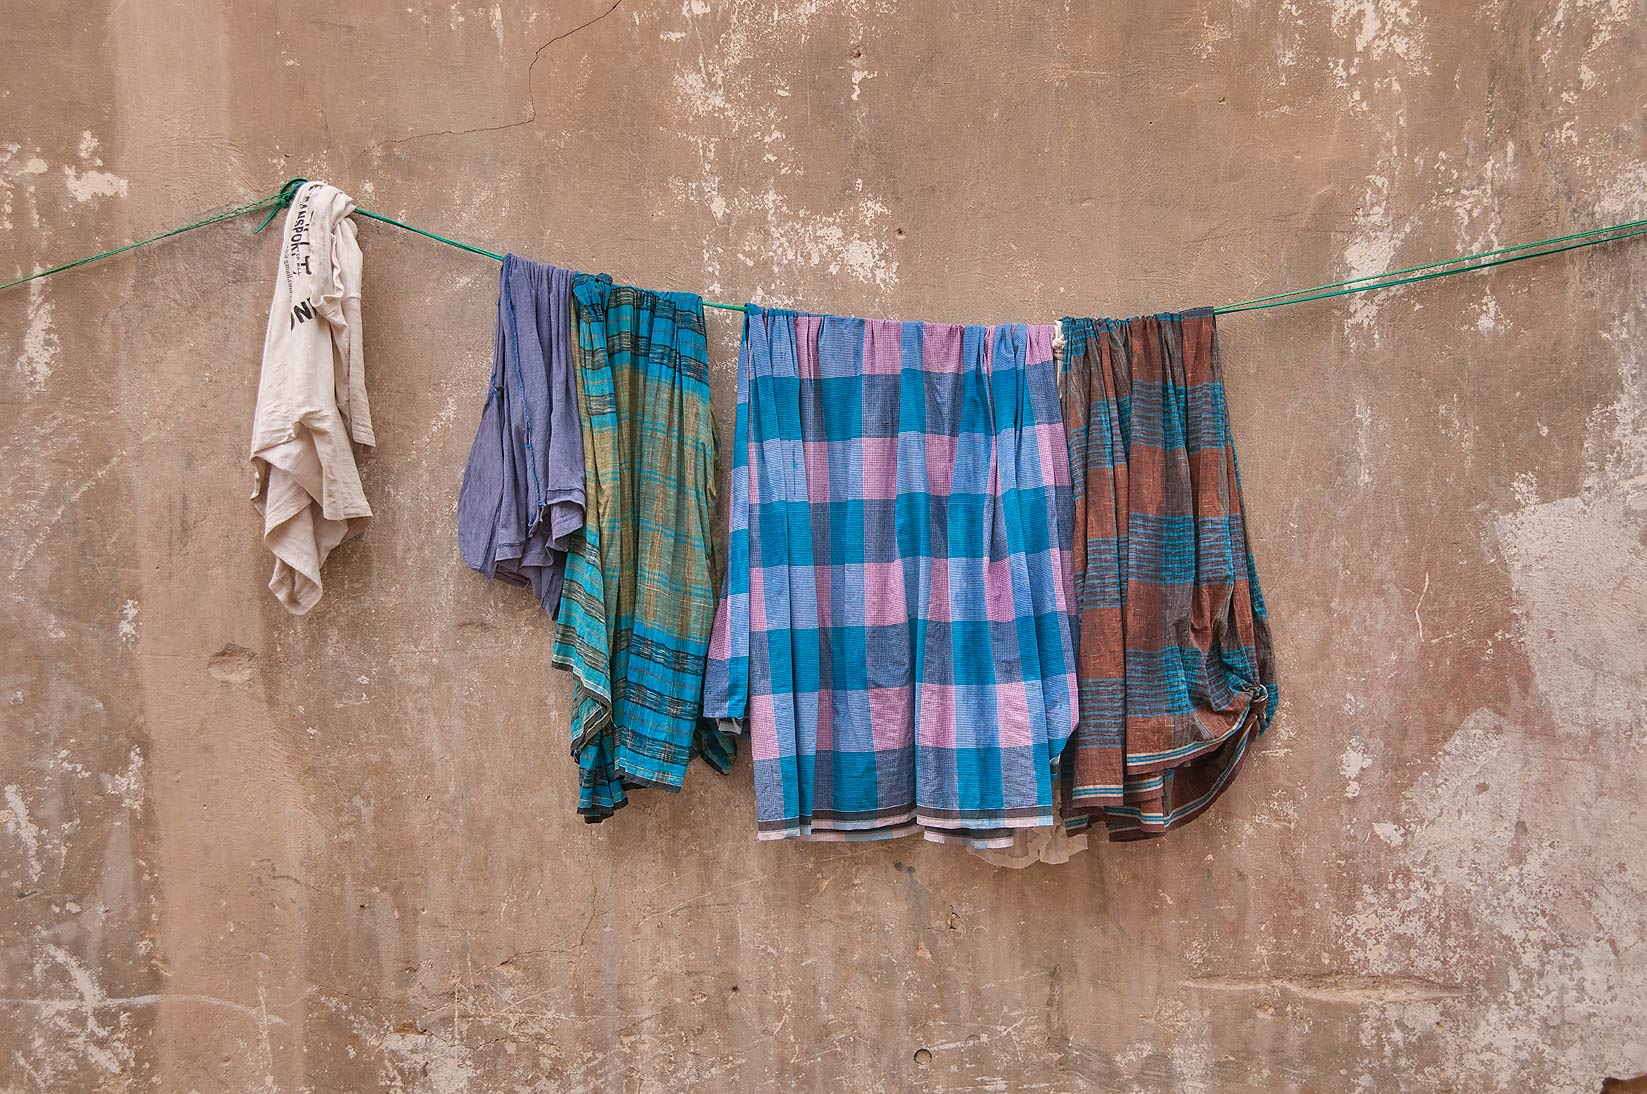 Hanging laundry at Al Jassasiya St. at rain, Musheirib area. Doha, Qatar